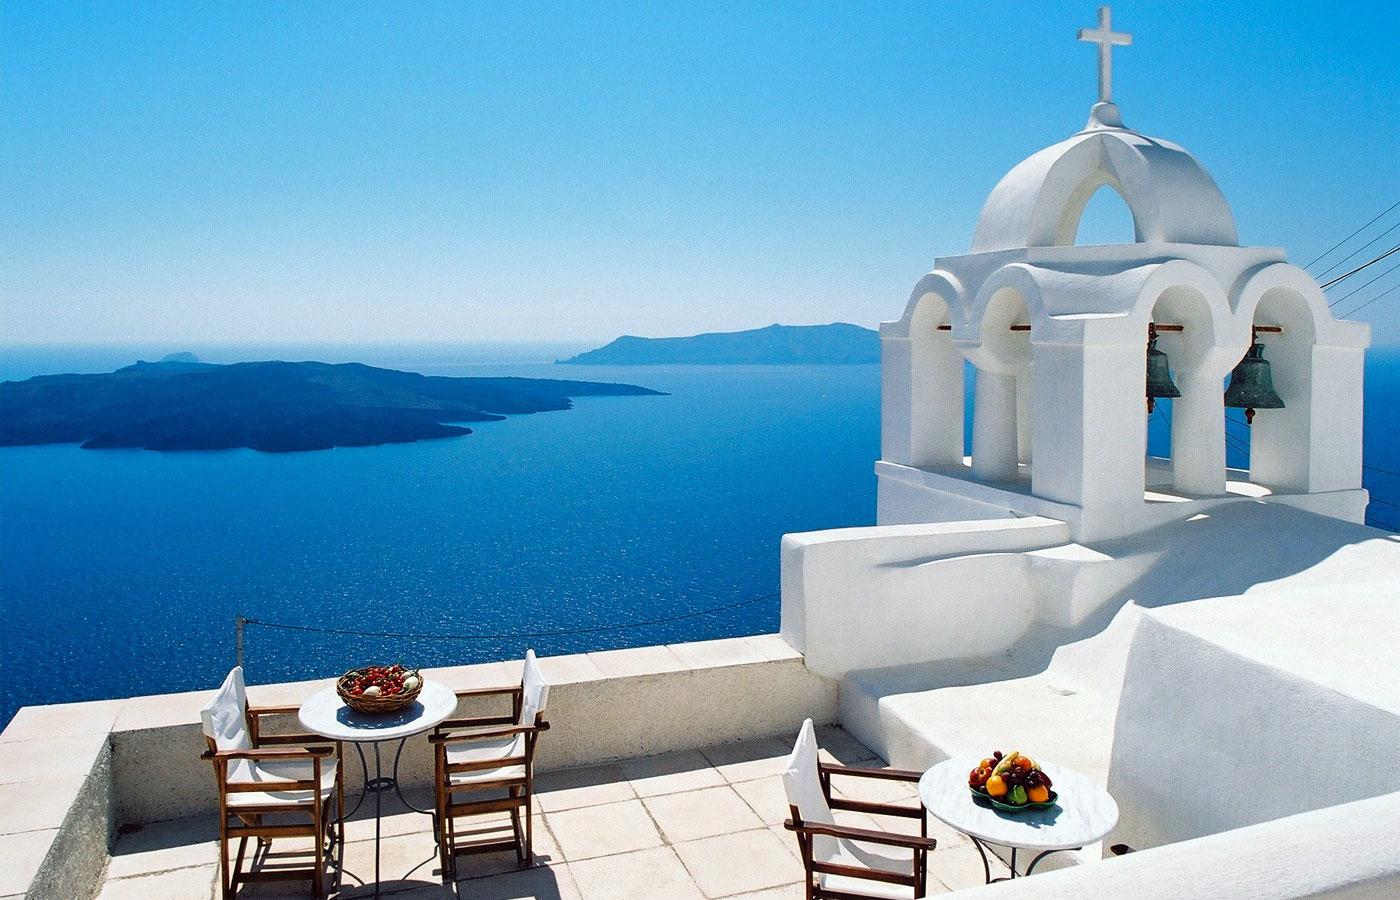 AD-Stunning-Photos-Of-Santorini-Greece-22